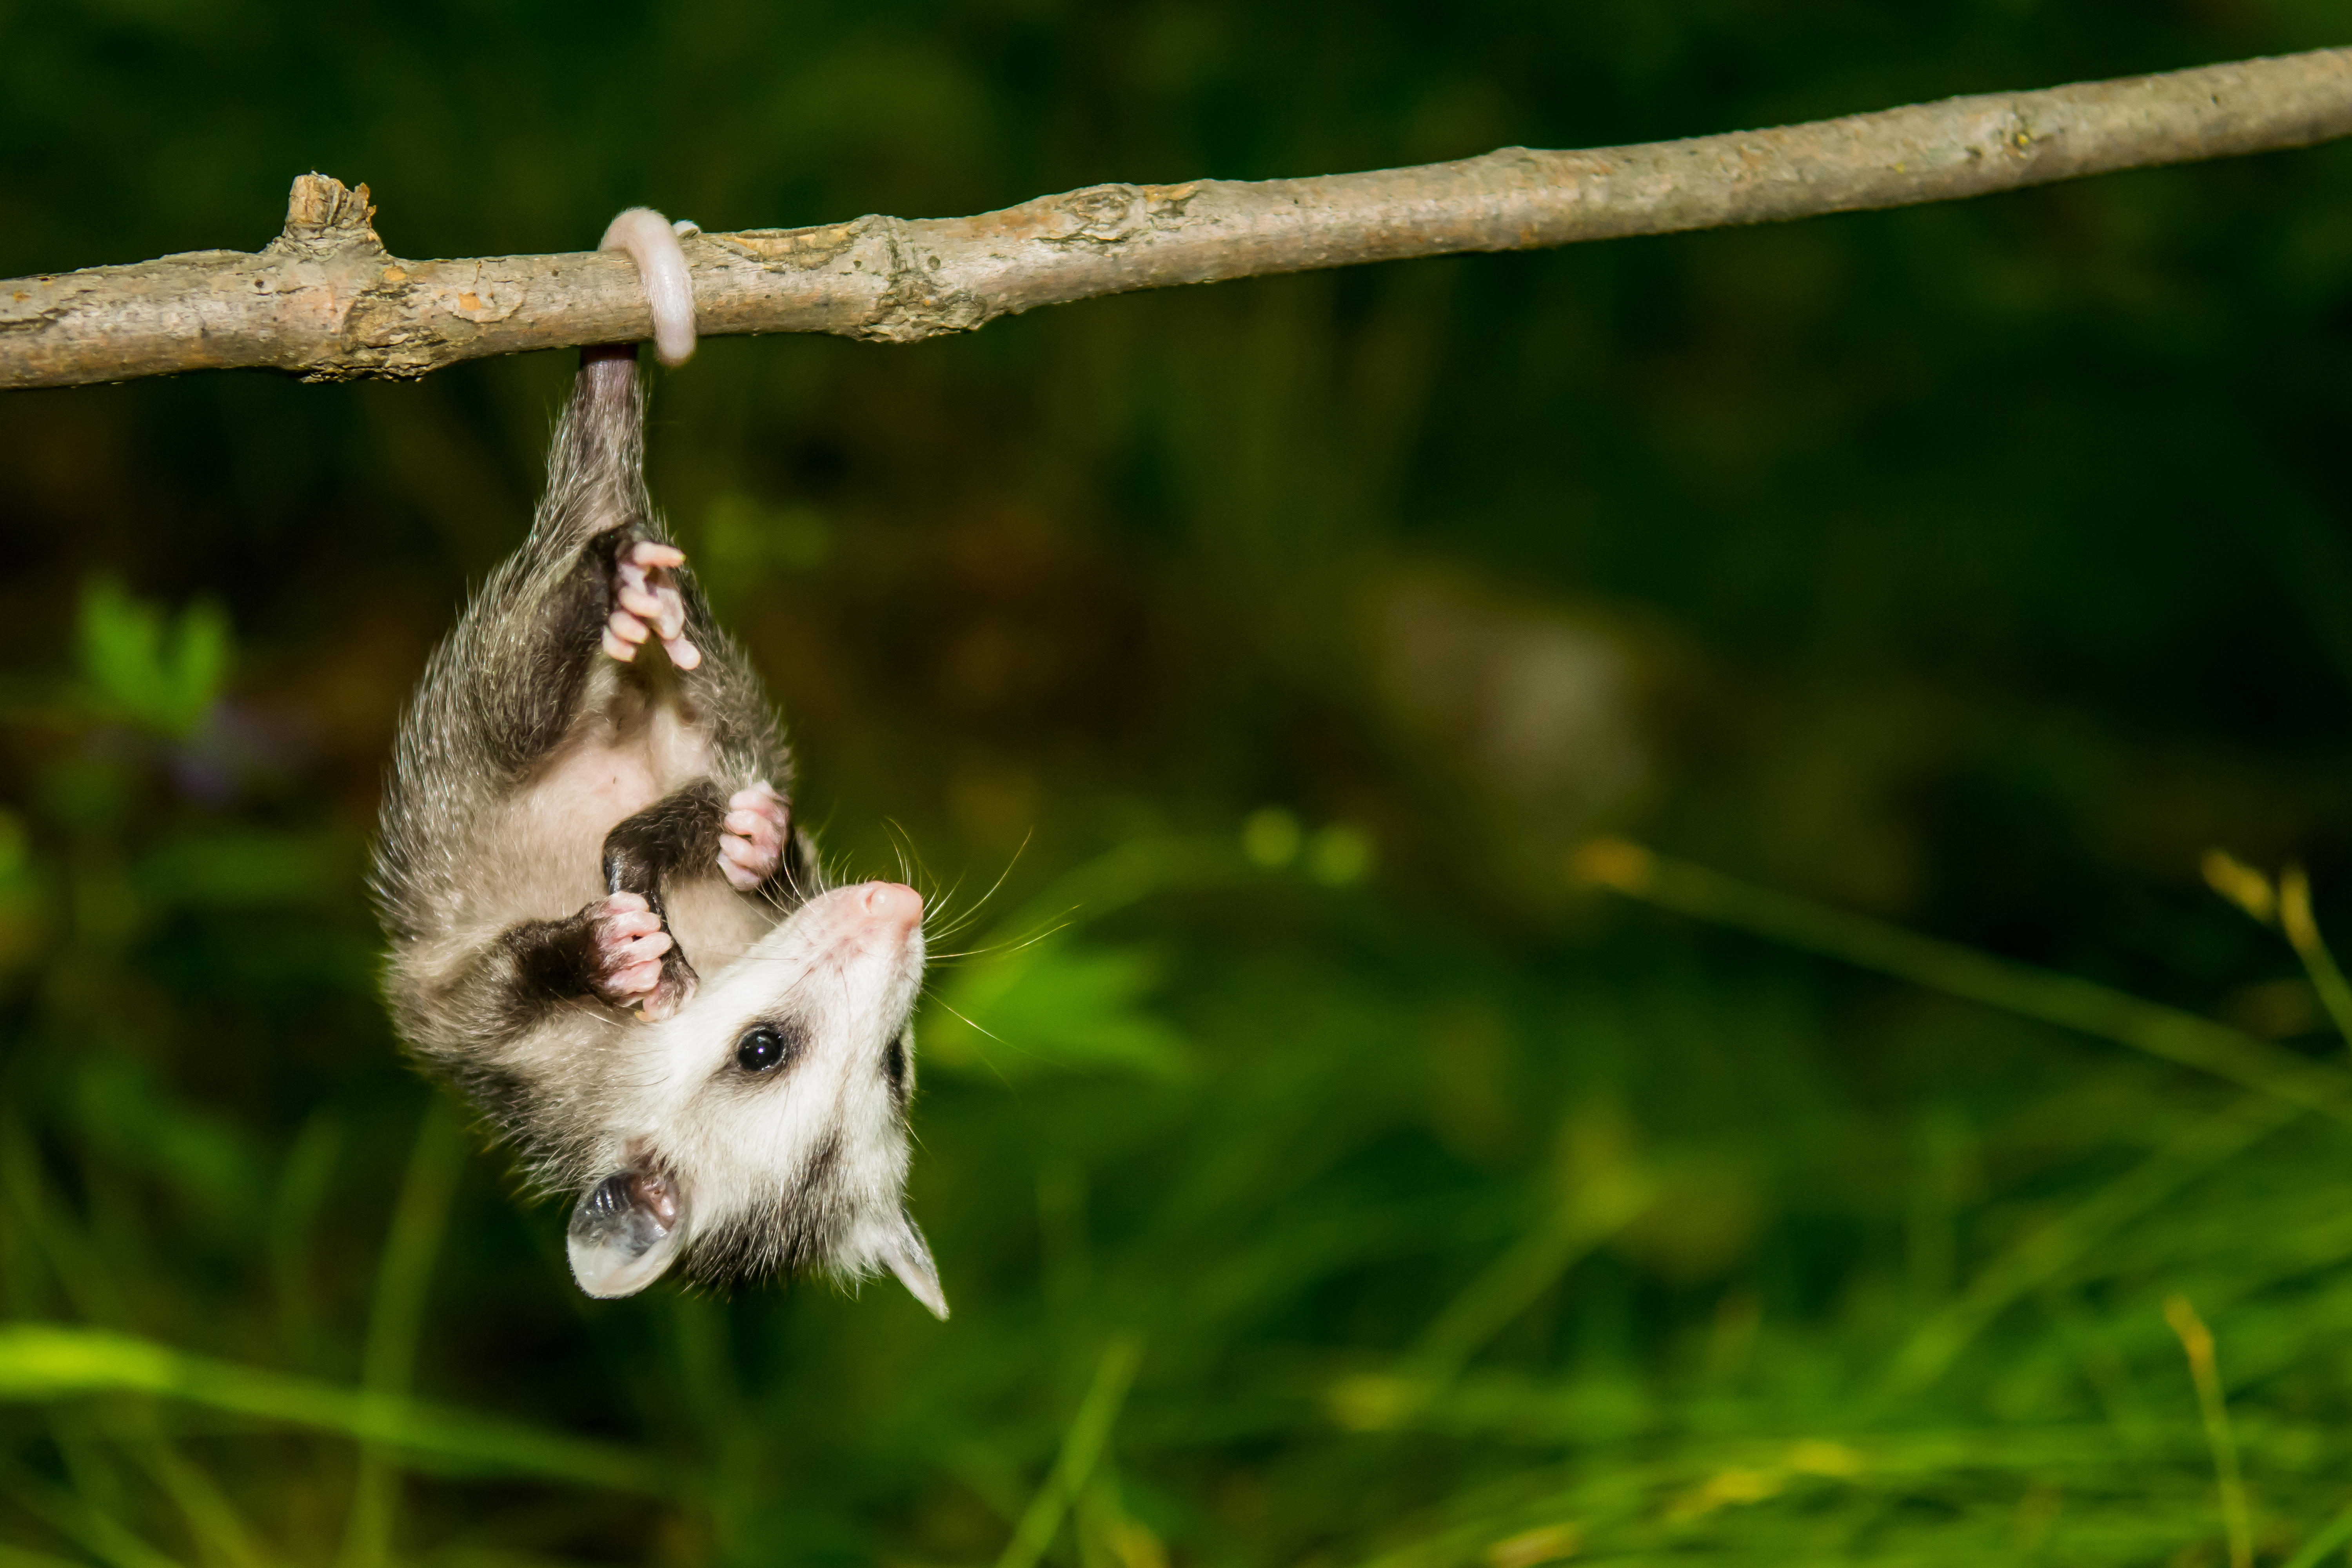 How To Get Rid Of A Possum In Your Garage home remedies to get rid of a possum | home guides | sf gate